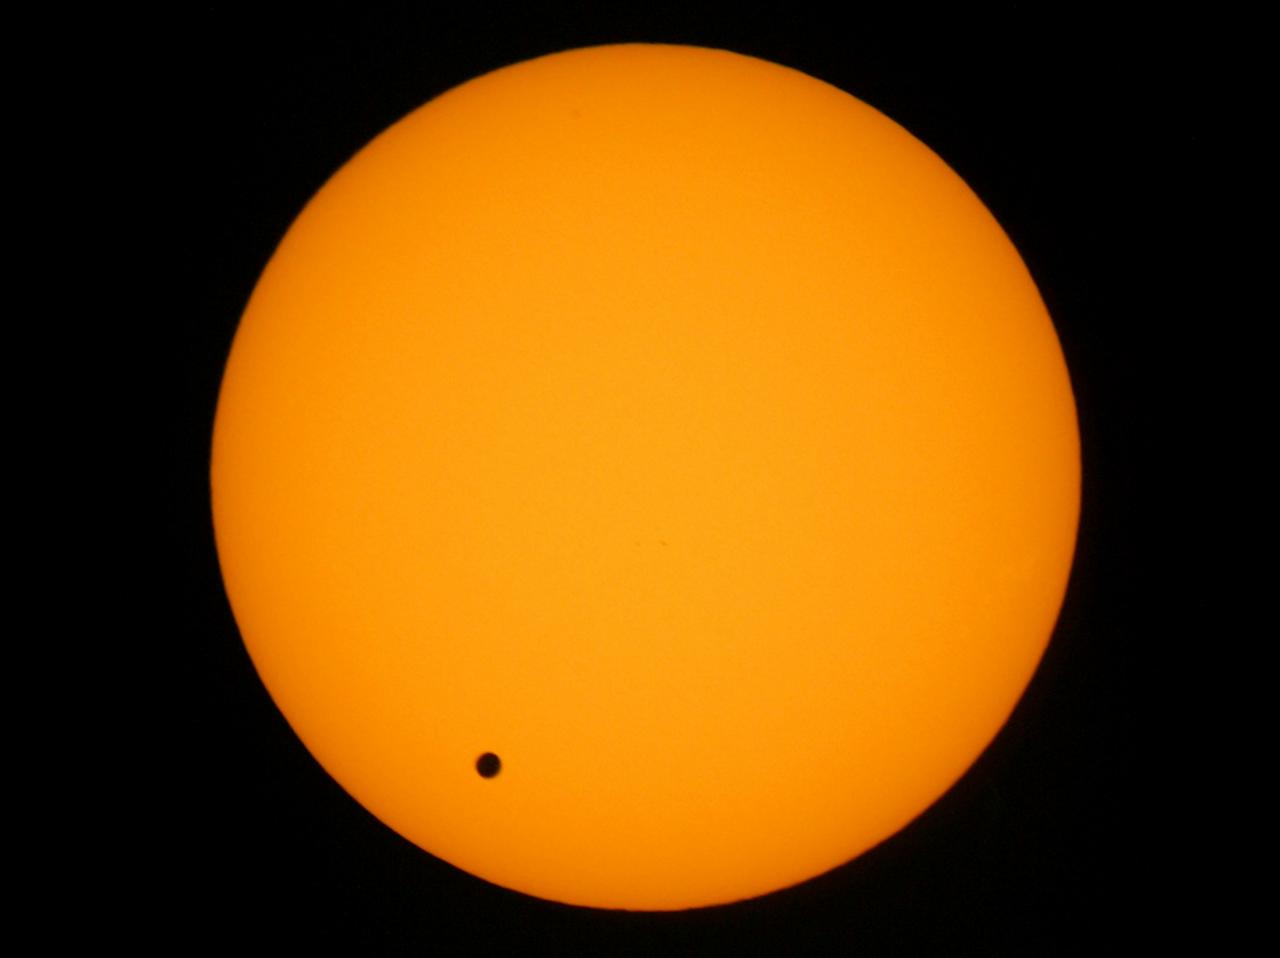 Venus transits across the sun as seen over Hong Kong June 8, 2004. The transit of Venus, when the planet drifts across the face of the Sun as it travels between the Sun and the Earth, is so rare that no living being has ever witnessed the celestial event. Five transits of Venus have been recorded - the last occured in 1882. REUTERS/Bobby Yip REUTERS  BY/SH